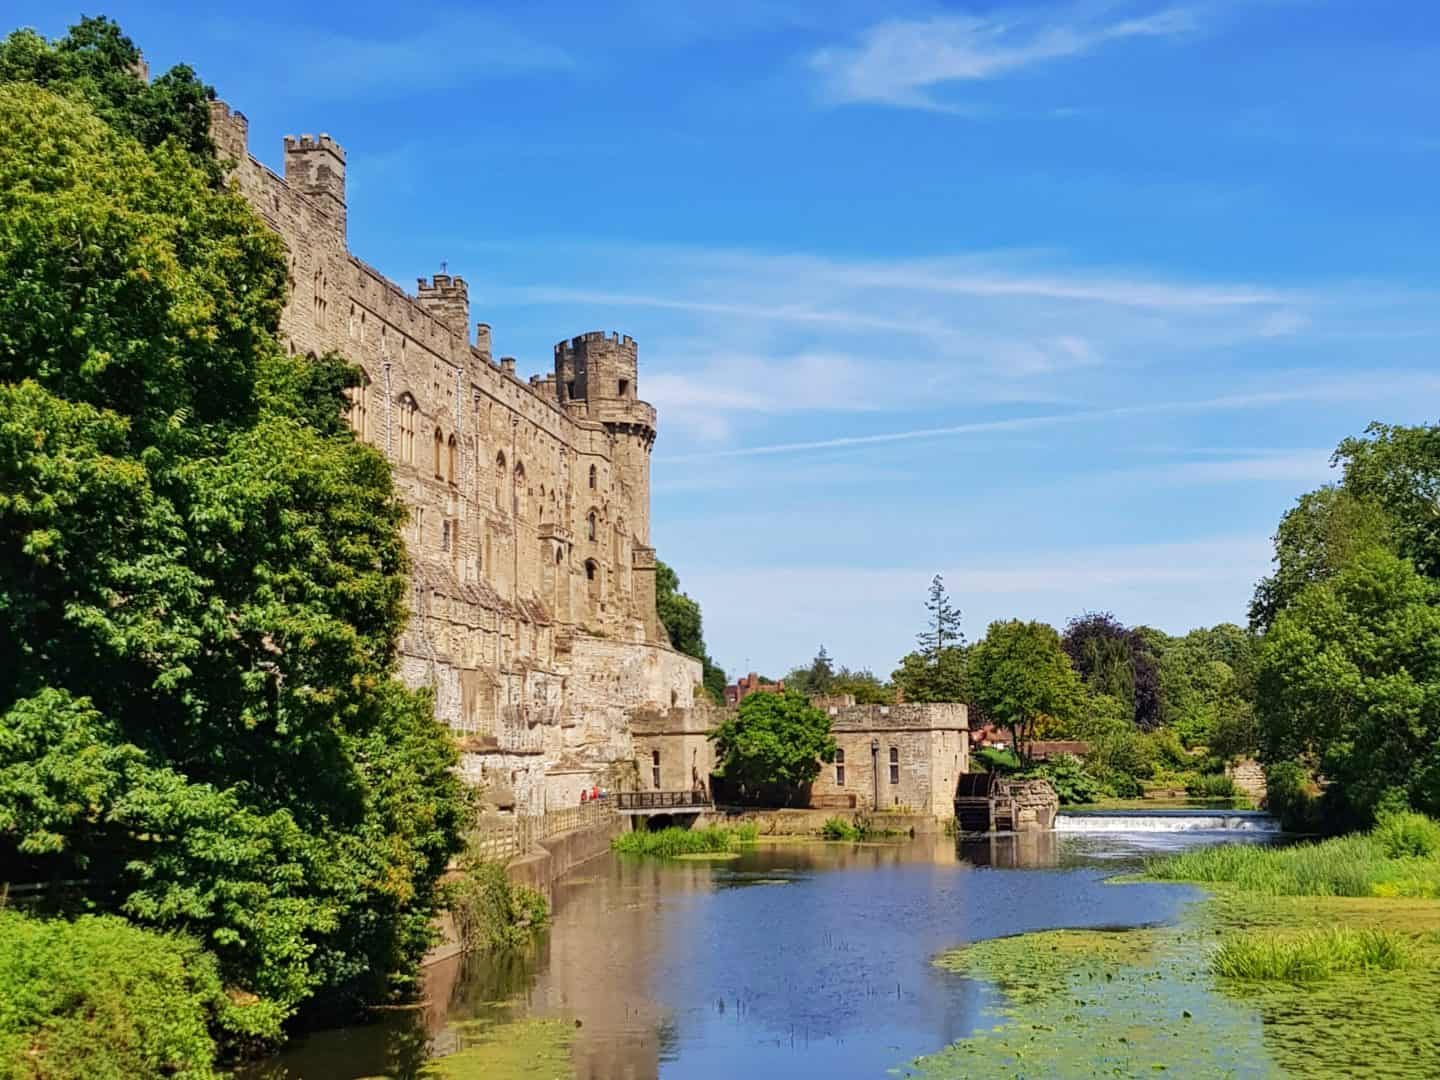 Warwick Castle viewed across the moat with waterfall on right hand side